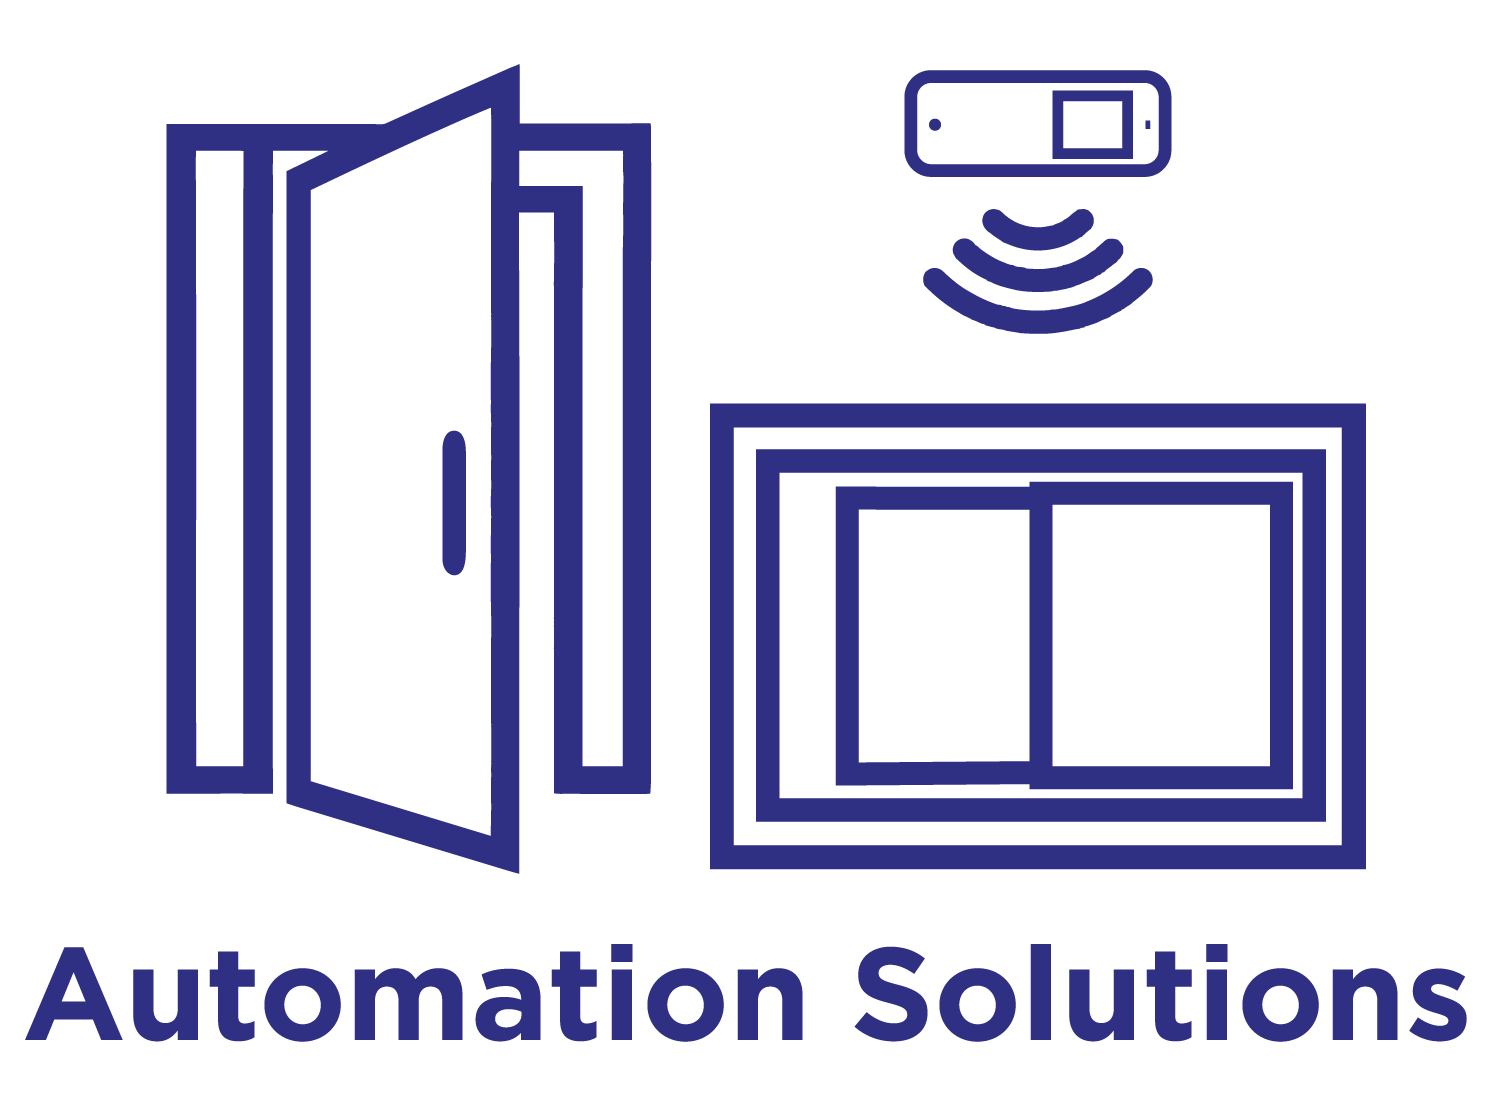 Summit - Automation Solutions